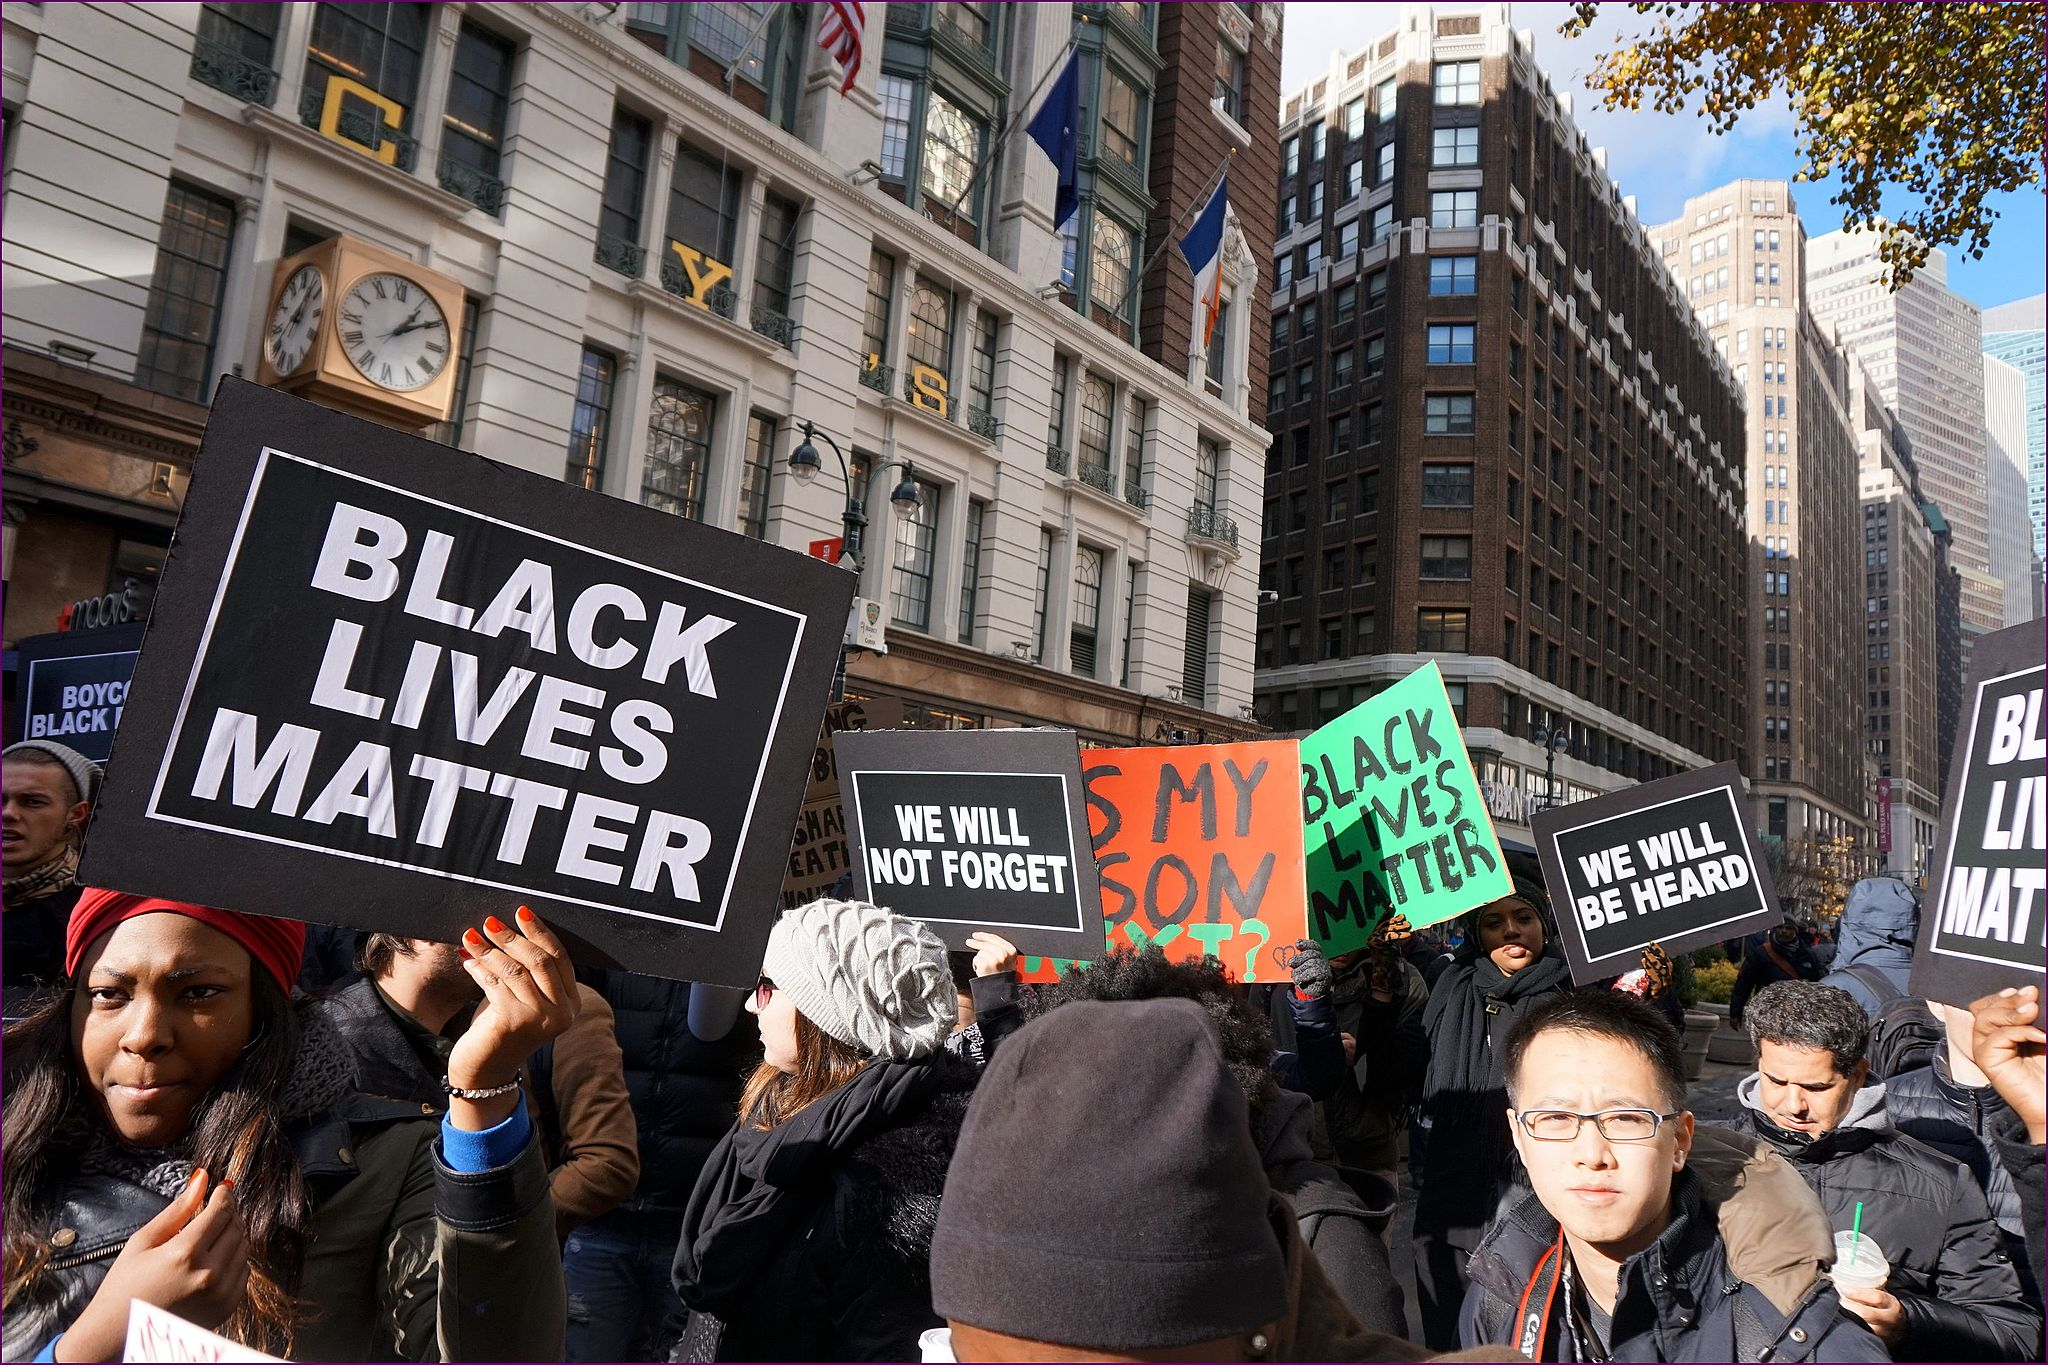 By The All-Nite Images from NY, NY, USA (Black Lives Matter Black Friday) [CC BY-SA 2.0 (http://creativecommons.org/licenses/by-sa/2.0)], via Wikimedia Commons